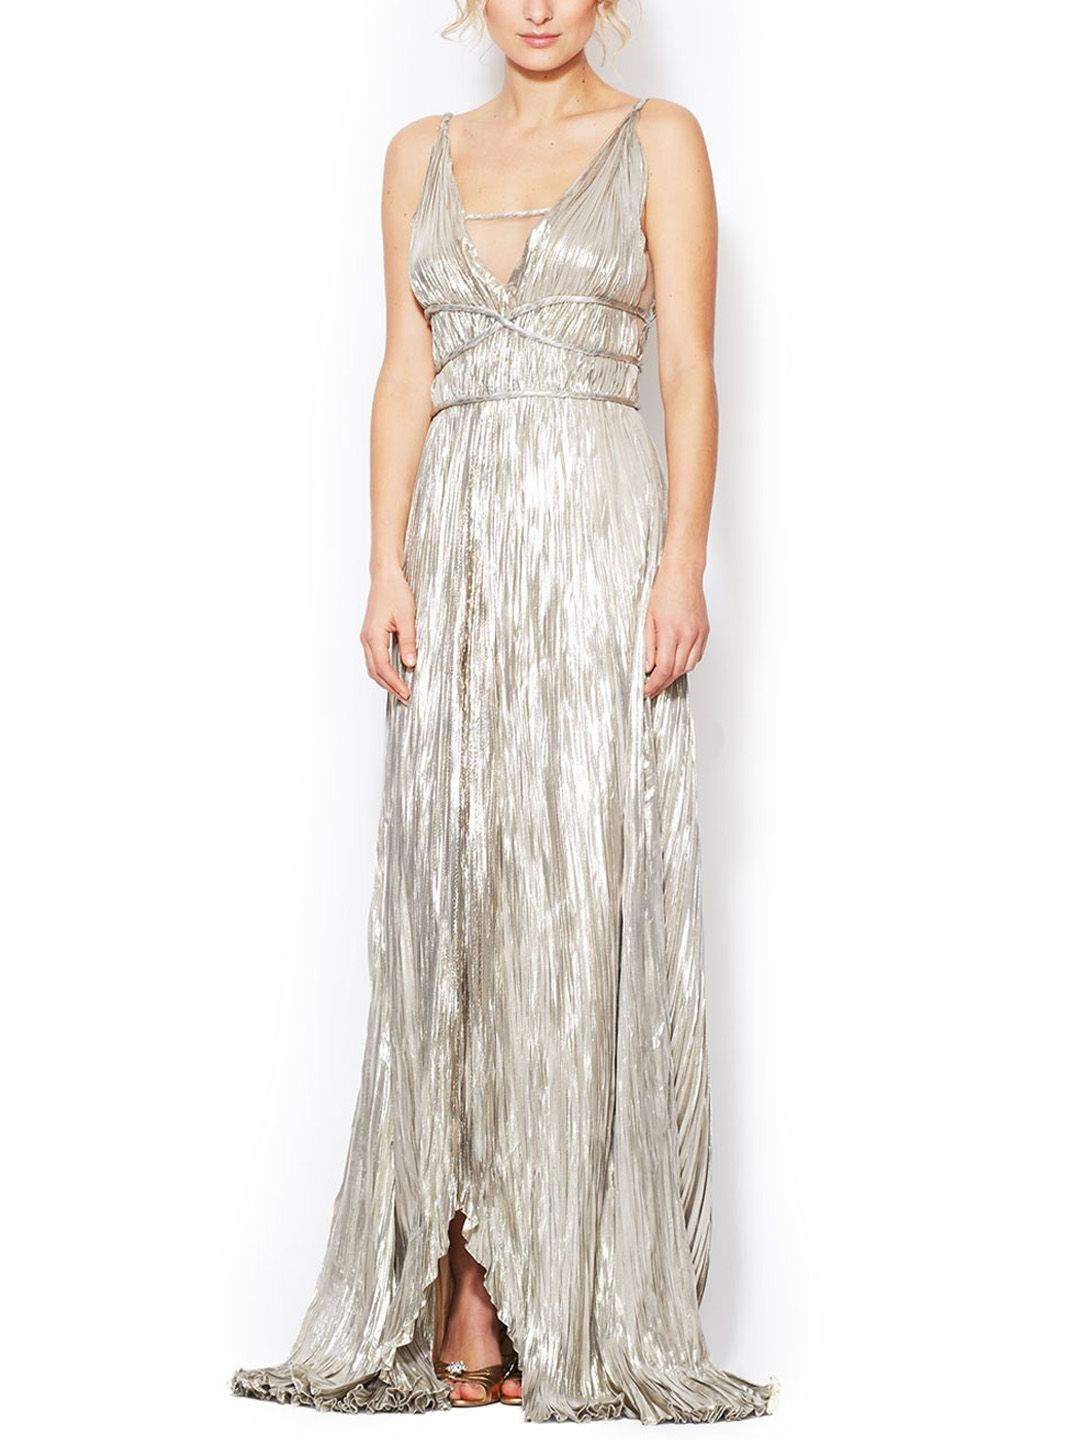 Silk Metallic Goddess Gown by Oscar de la Renta at Gilt